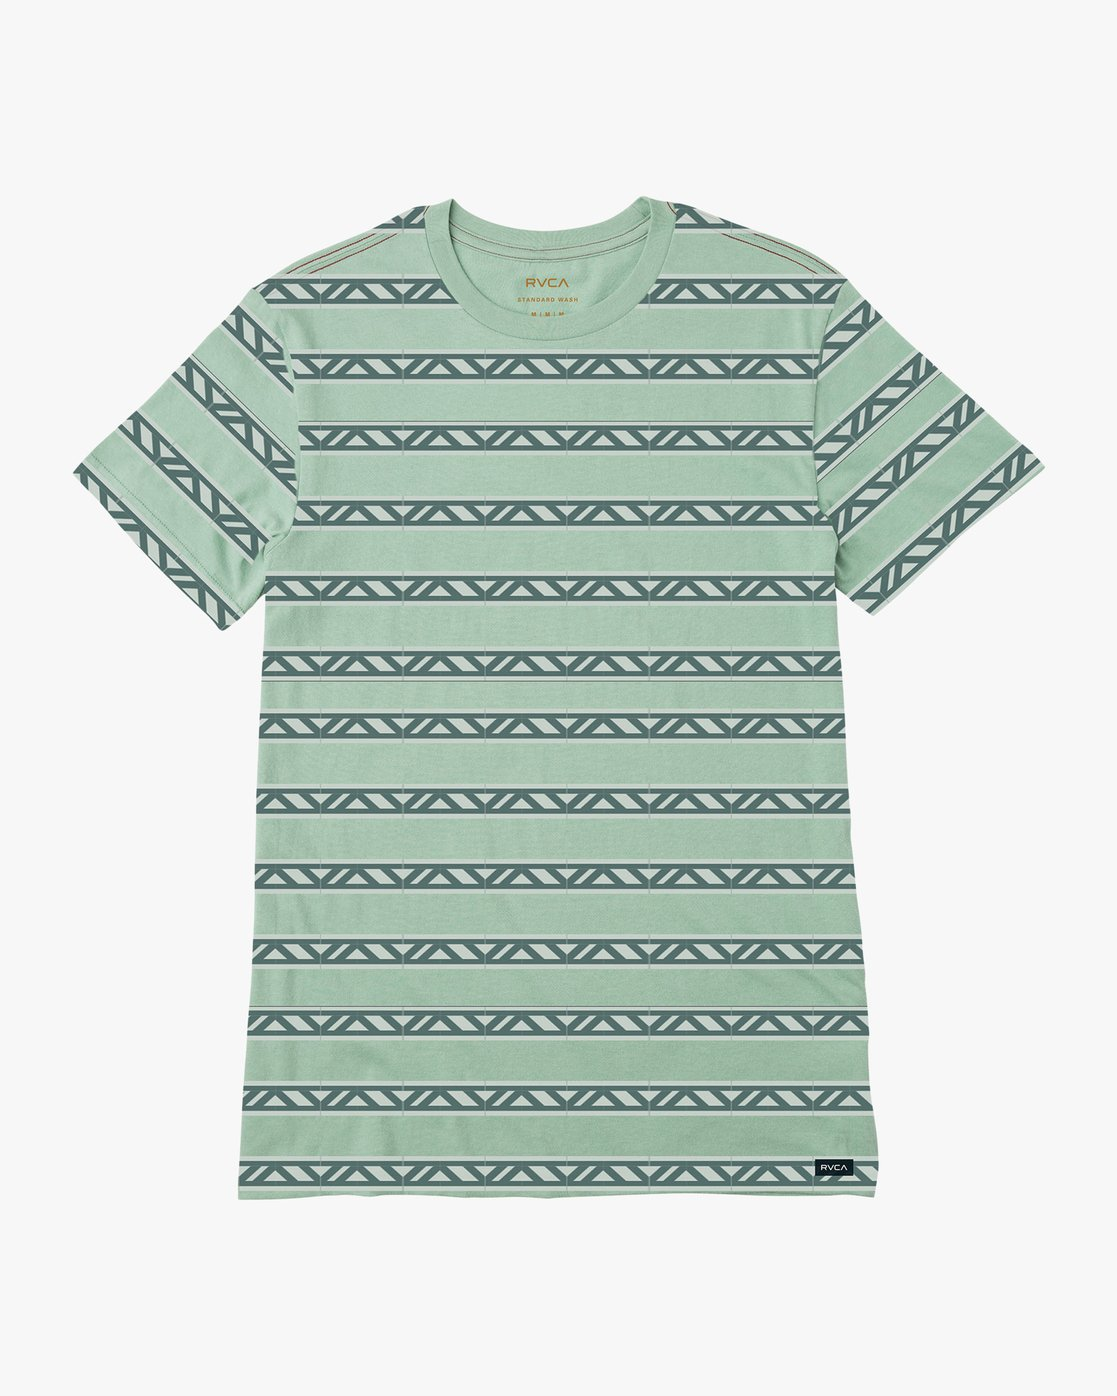 0 VA Repeater Striped T-Shirt Green M422QRVA RVCA